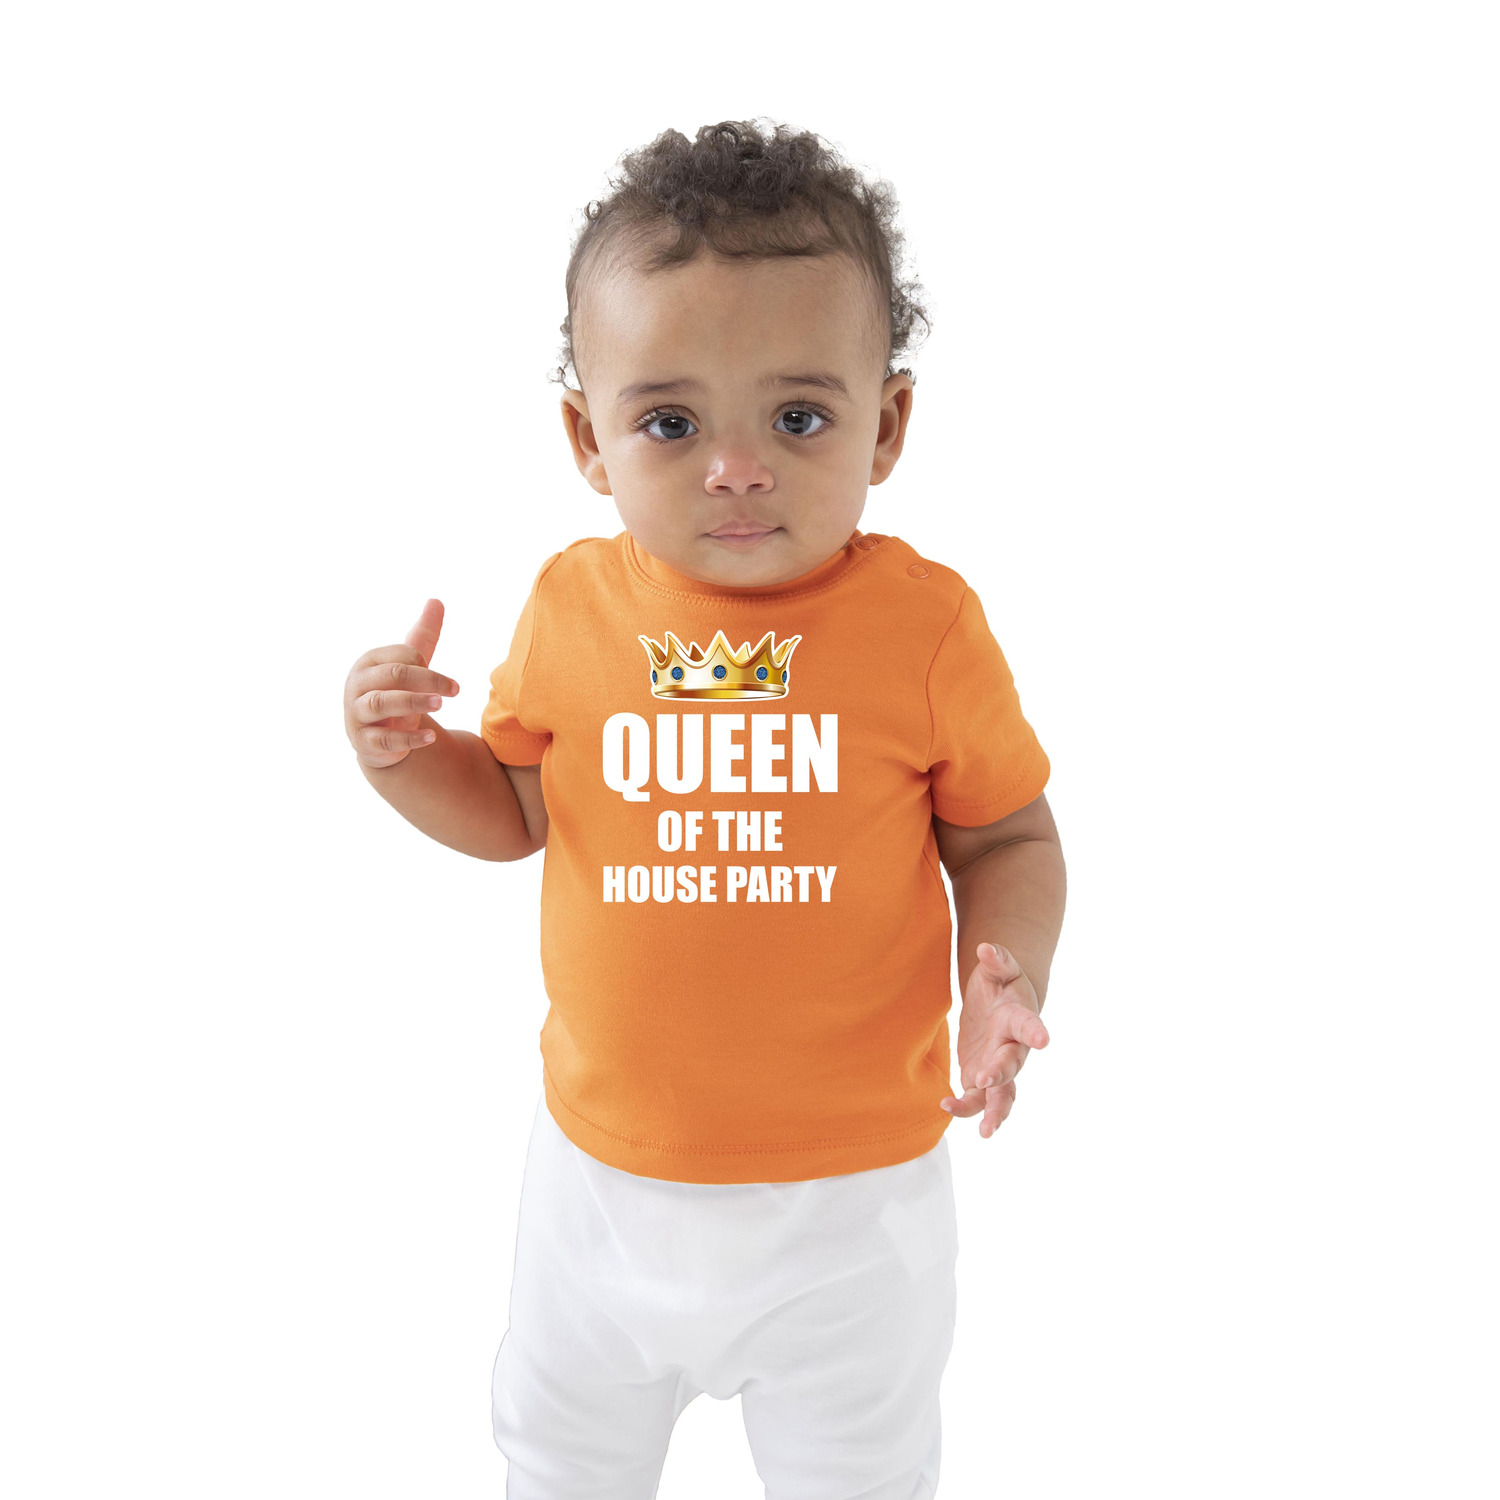 Queen of the house party met kroon Koningsdag t-shirt oranje baby-peuter voor meisjes